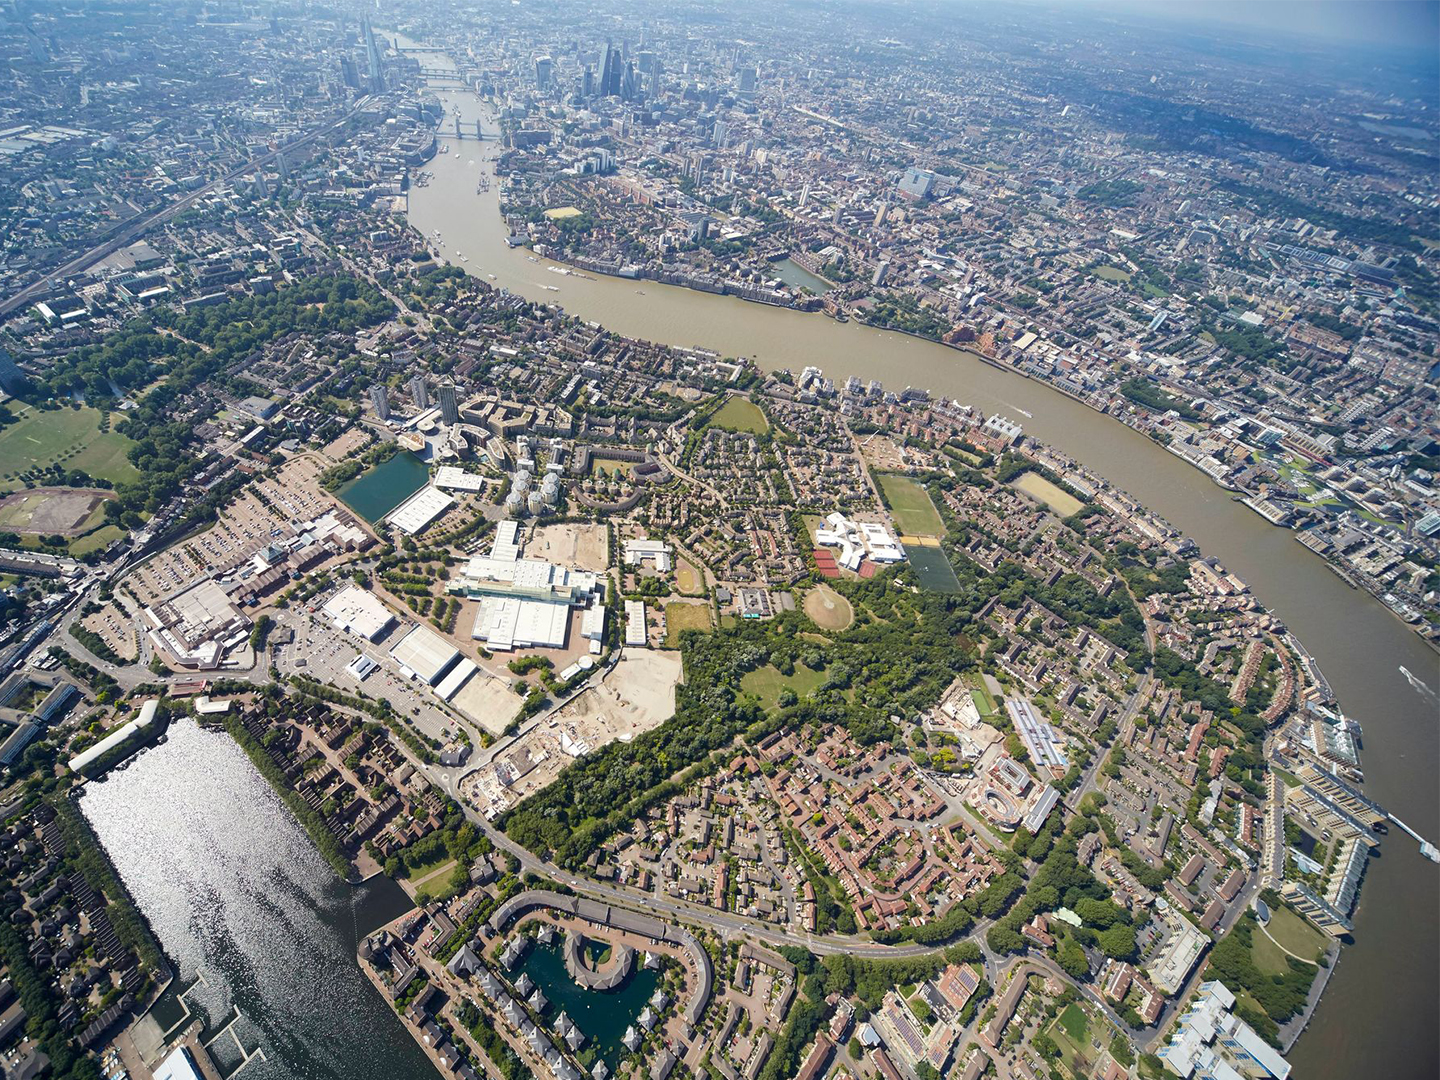 The Thames in 2040: Developing a new river commons in Southwark